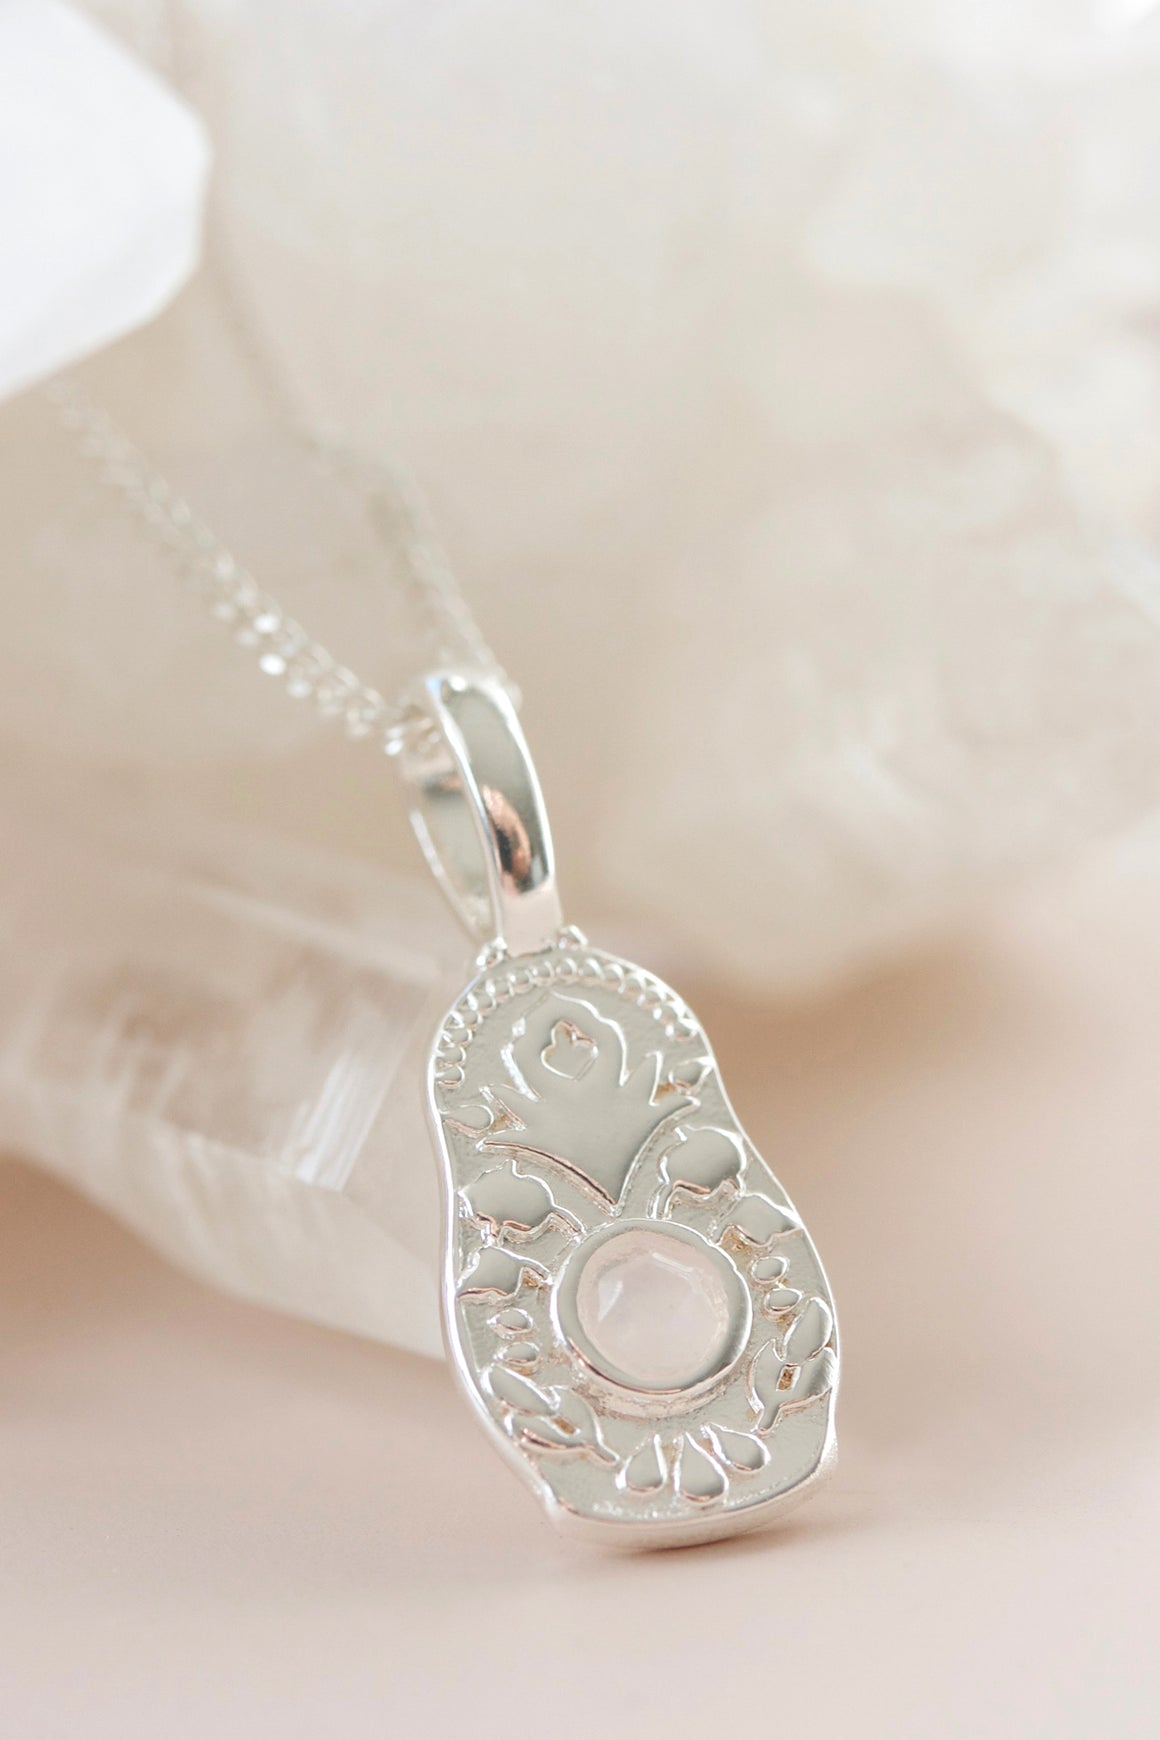 silver babushka doll necklace